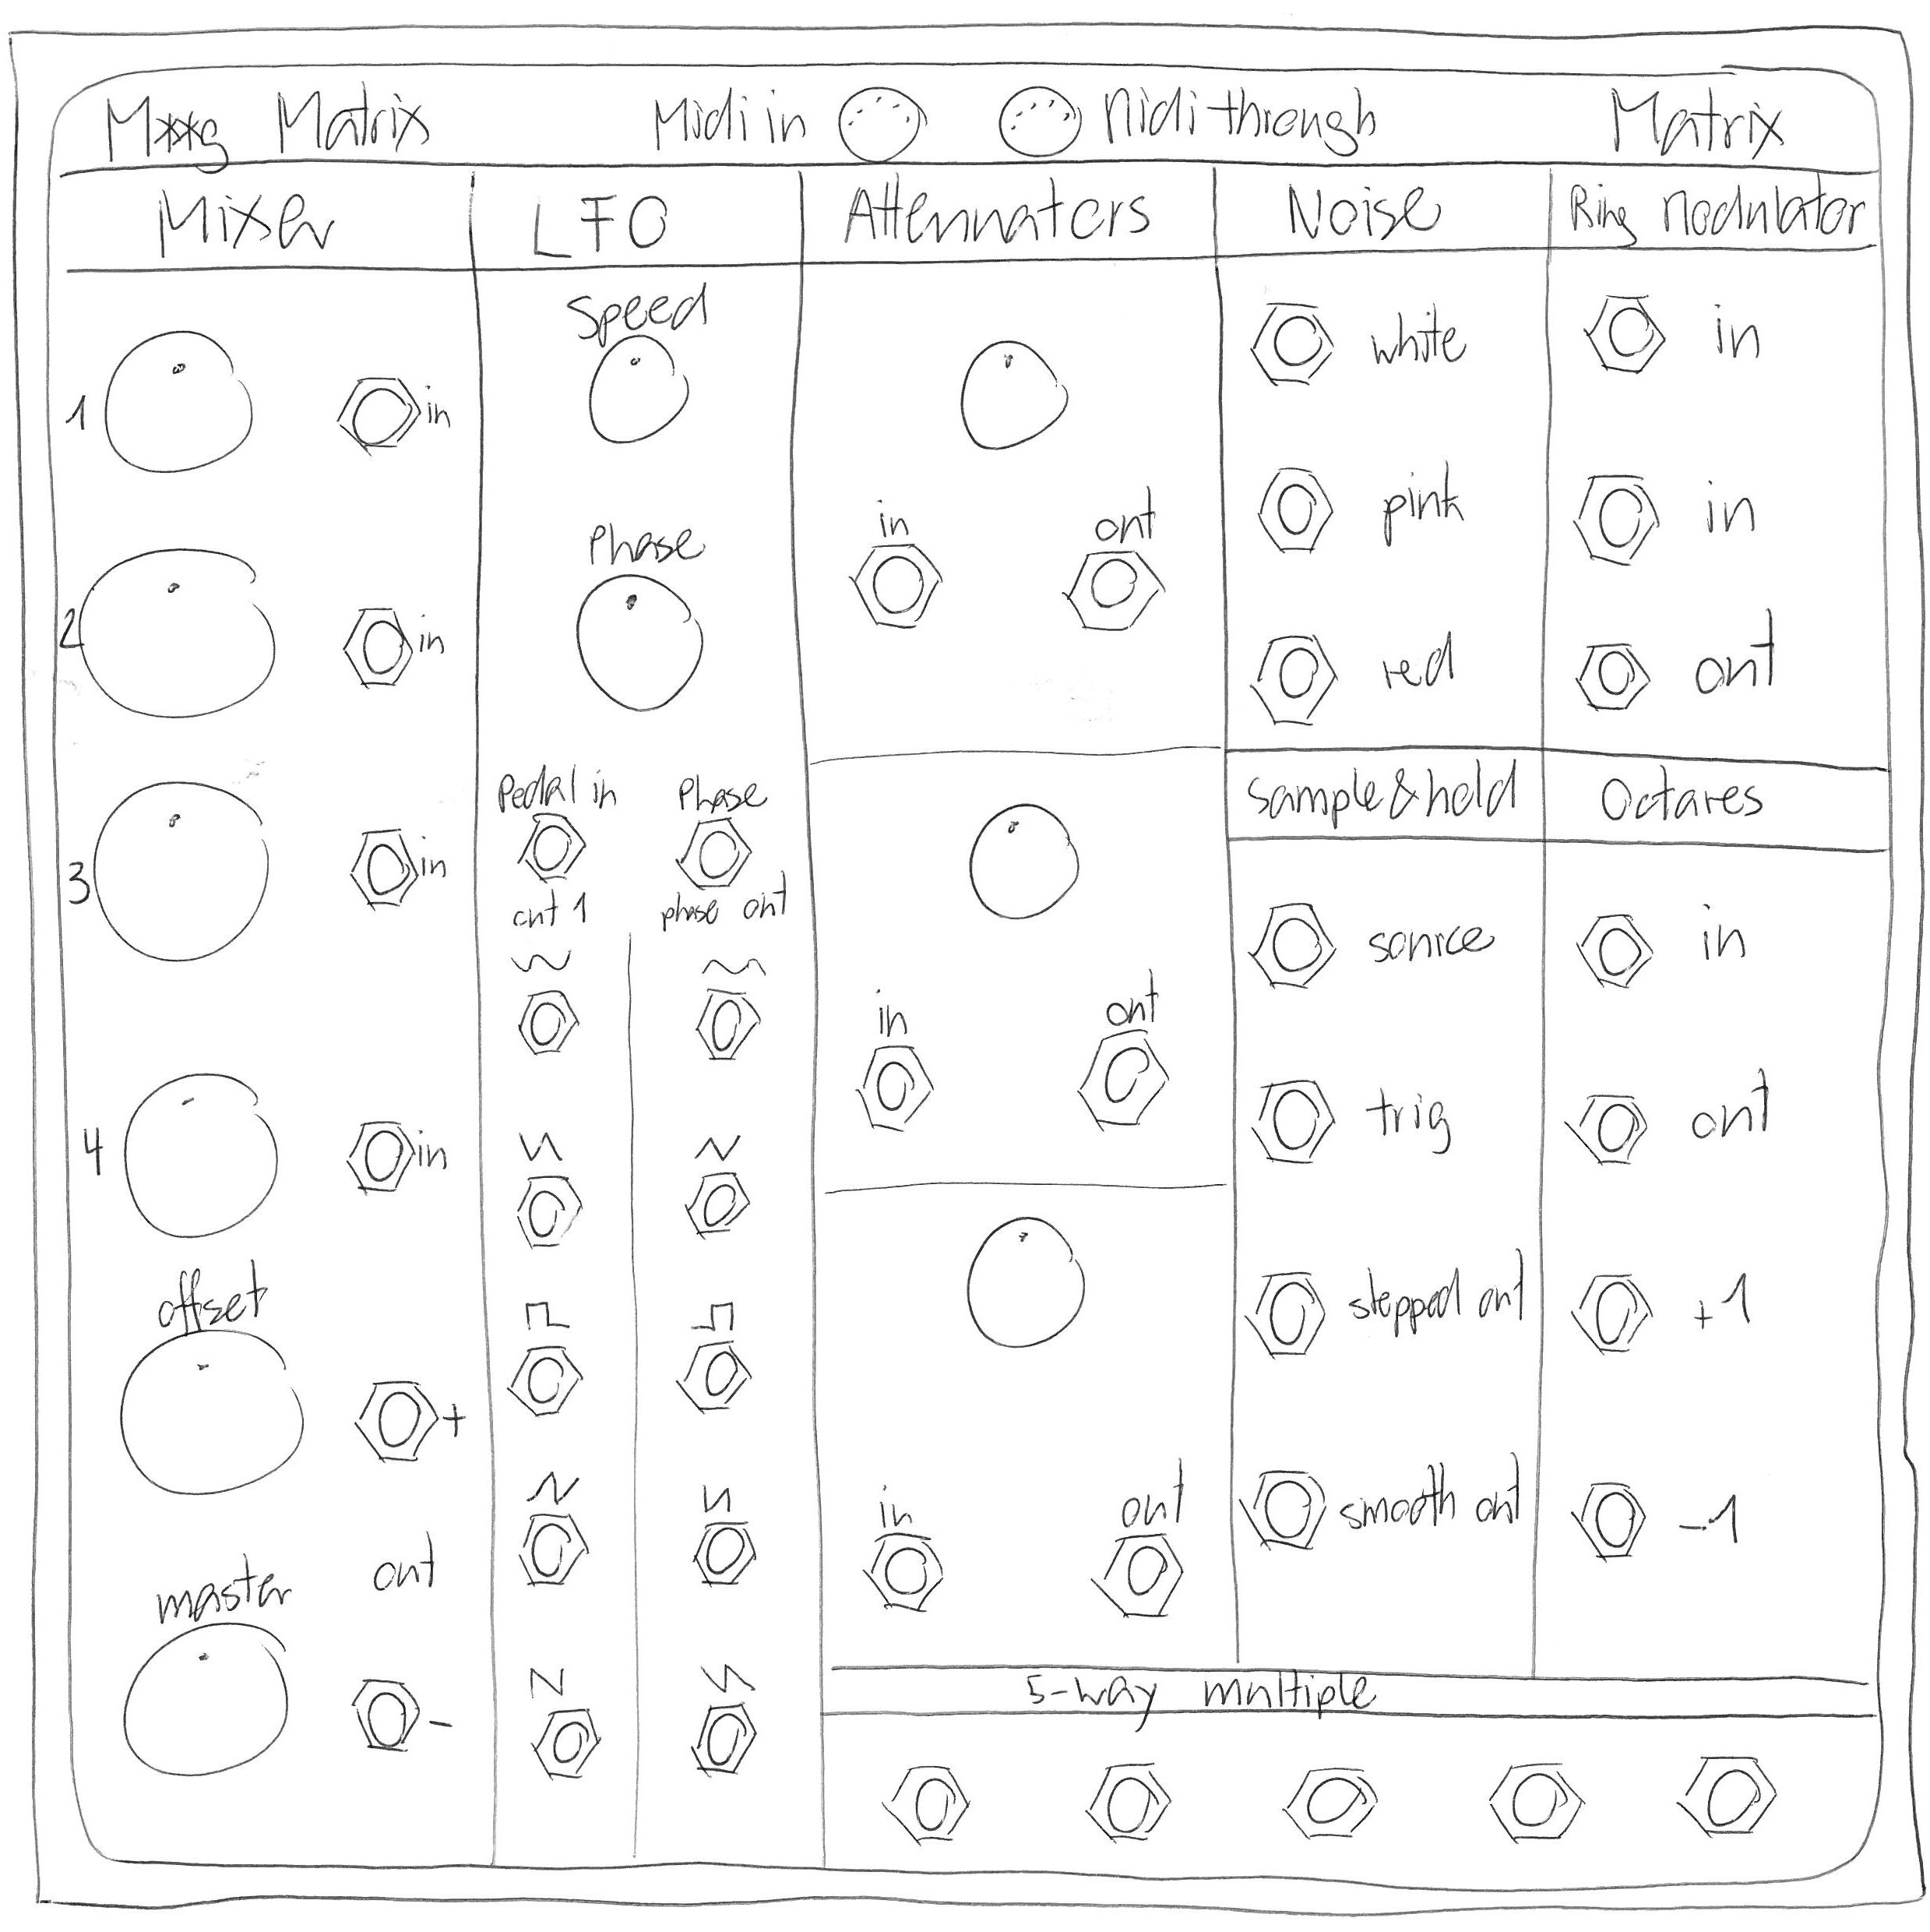 Moog Music Forum View Topic Proposing The Matrix Series Electromusiccom Please Explain Me This Ad Envelop Would Give You More Control Options And Work Really Well With Anything Analog